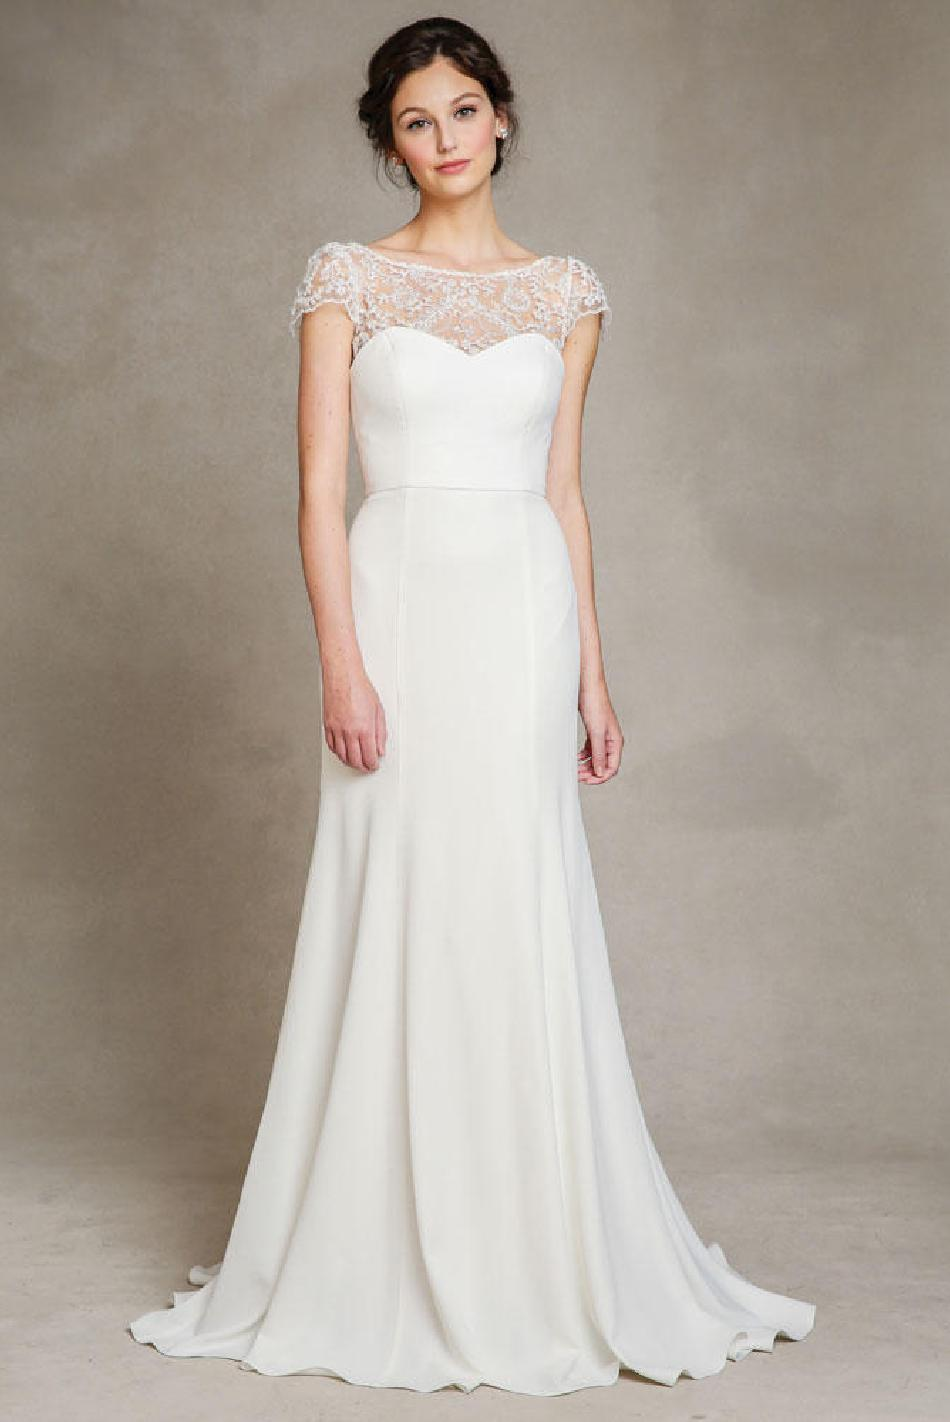 46c73a1c333 Your wedding plan will include a number of unexpected splurges but donot let  your wedding dress be one of them